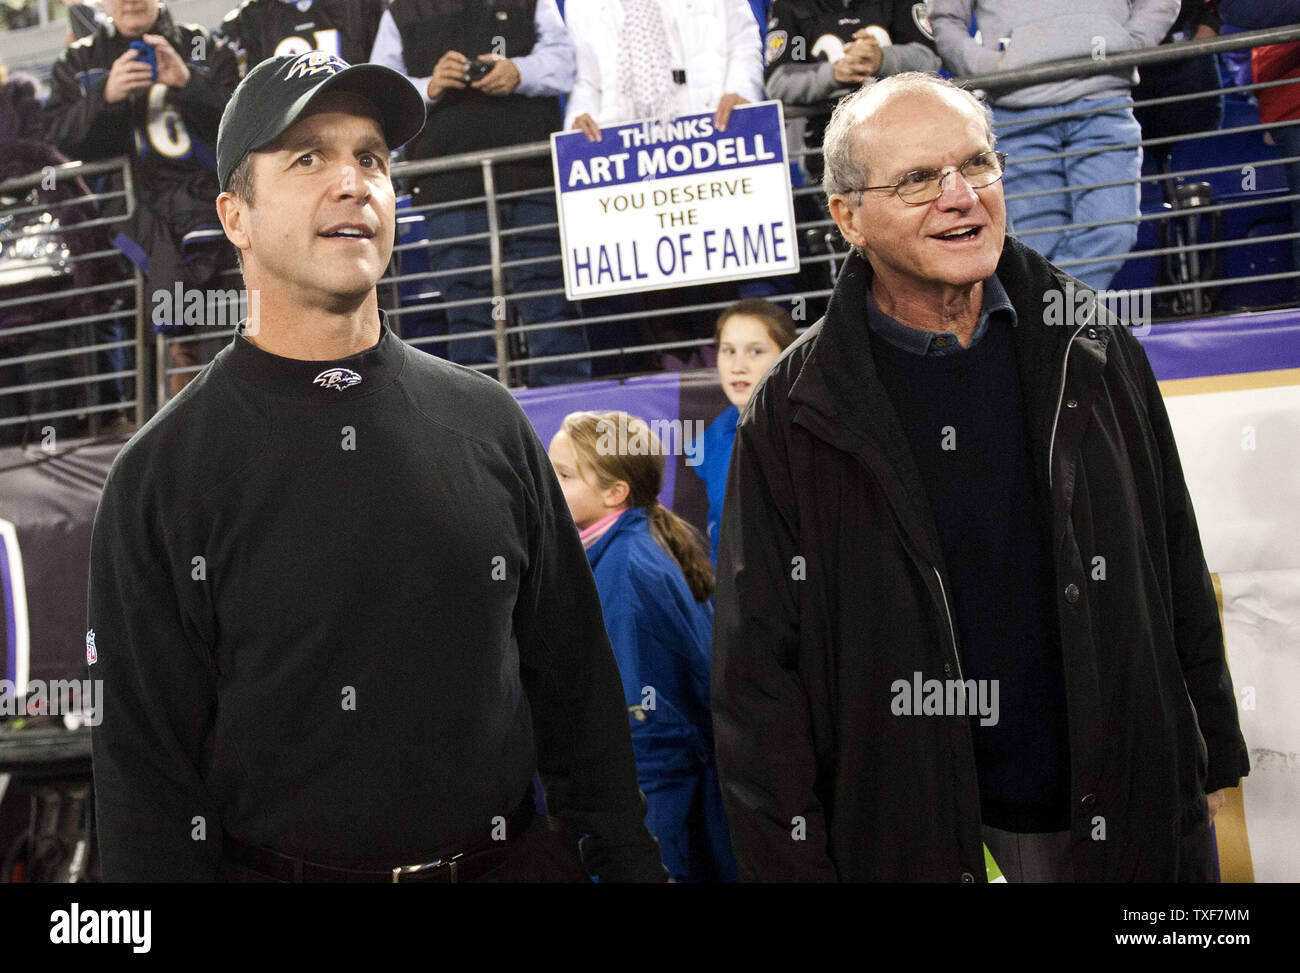 Father Jack Stock Photos & Father Jack Stock Images - Alamy